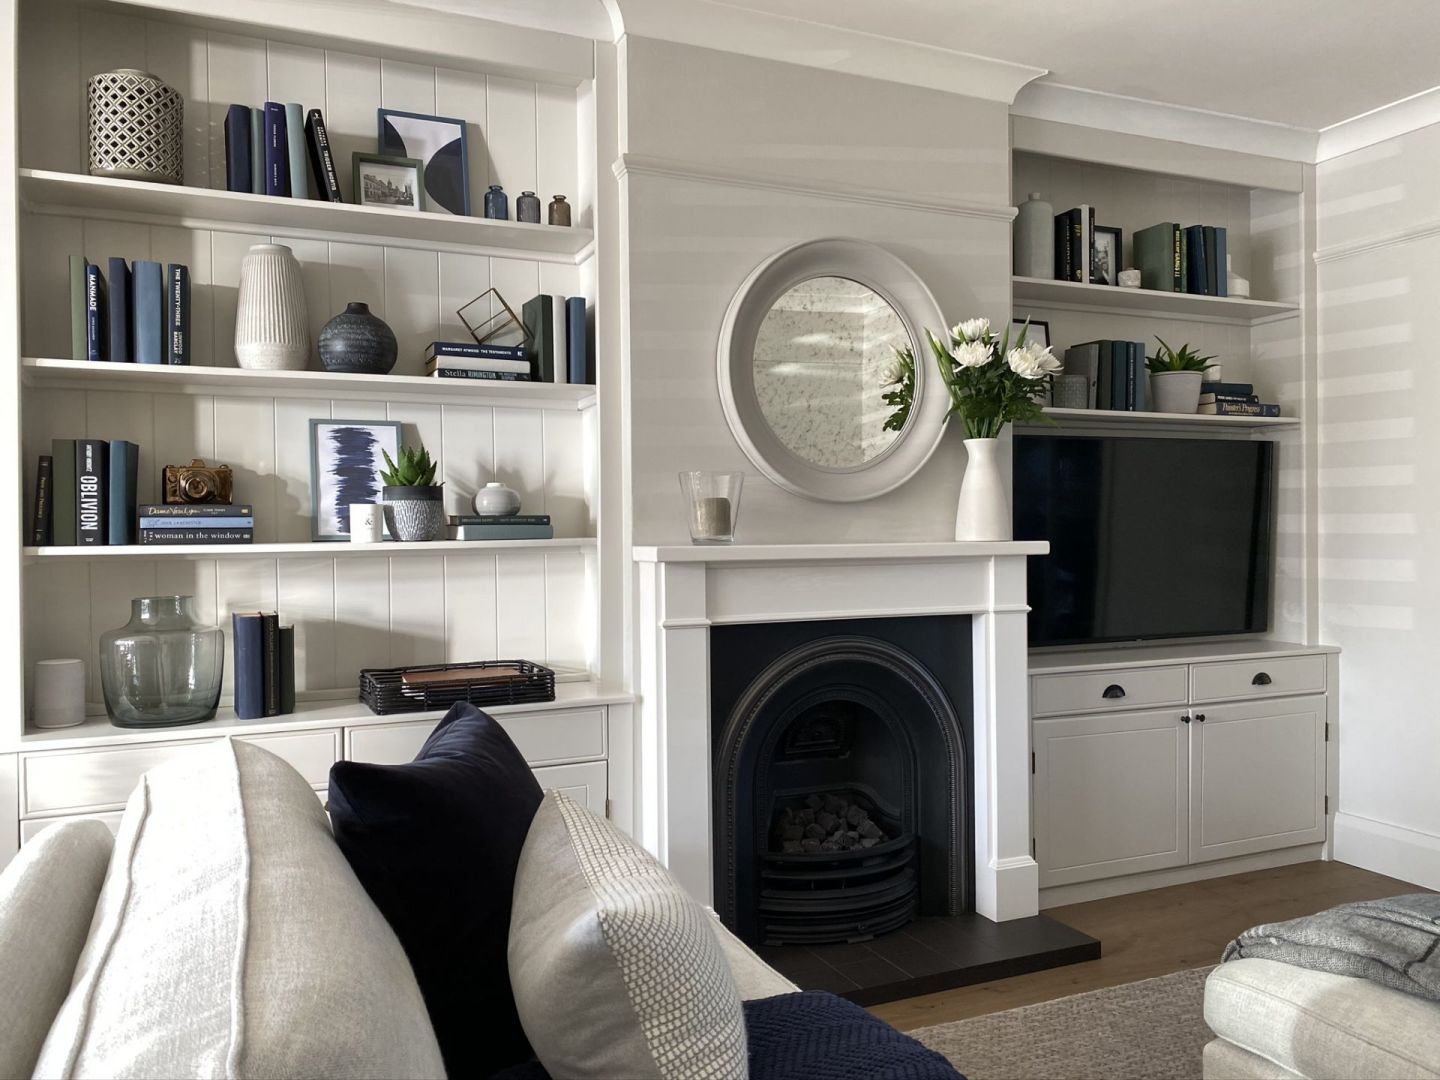 Our Living Room Alcoves Project with Wickes